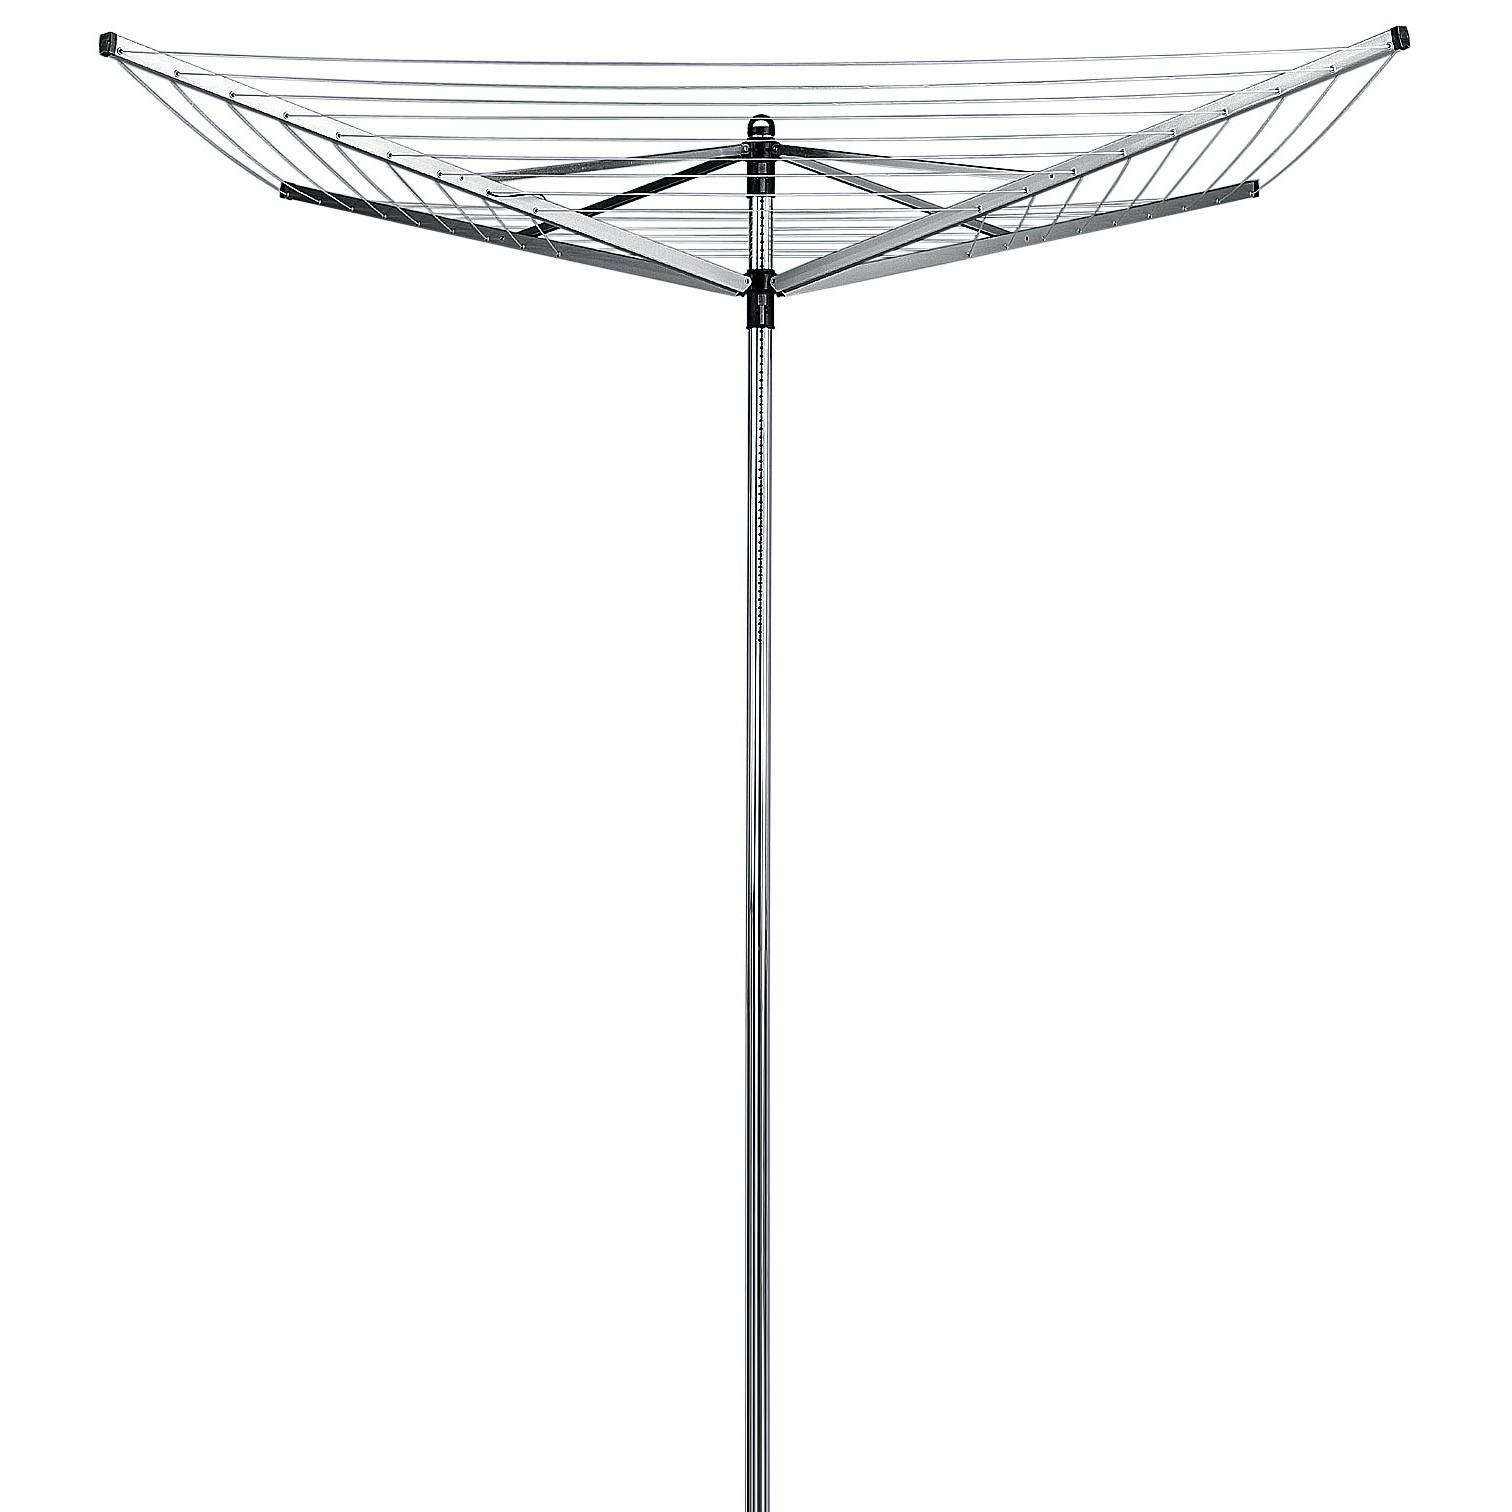 Brabantia Lift-O-Matic Rotary Clothes Line Dryer, 4 Arm / 60m